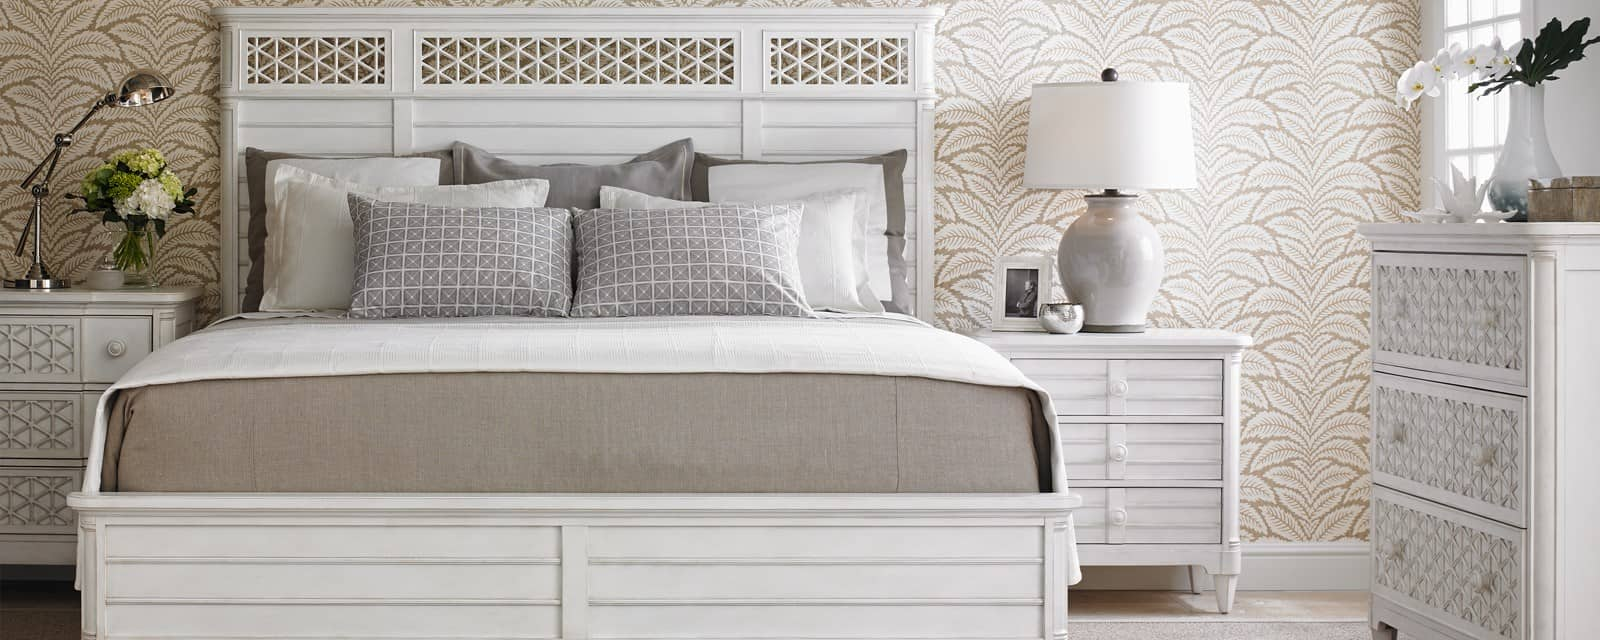 nightstand with bed Stylish Ways To Keep Your Home Organized